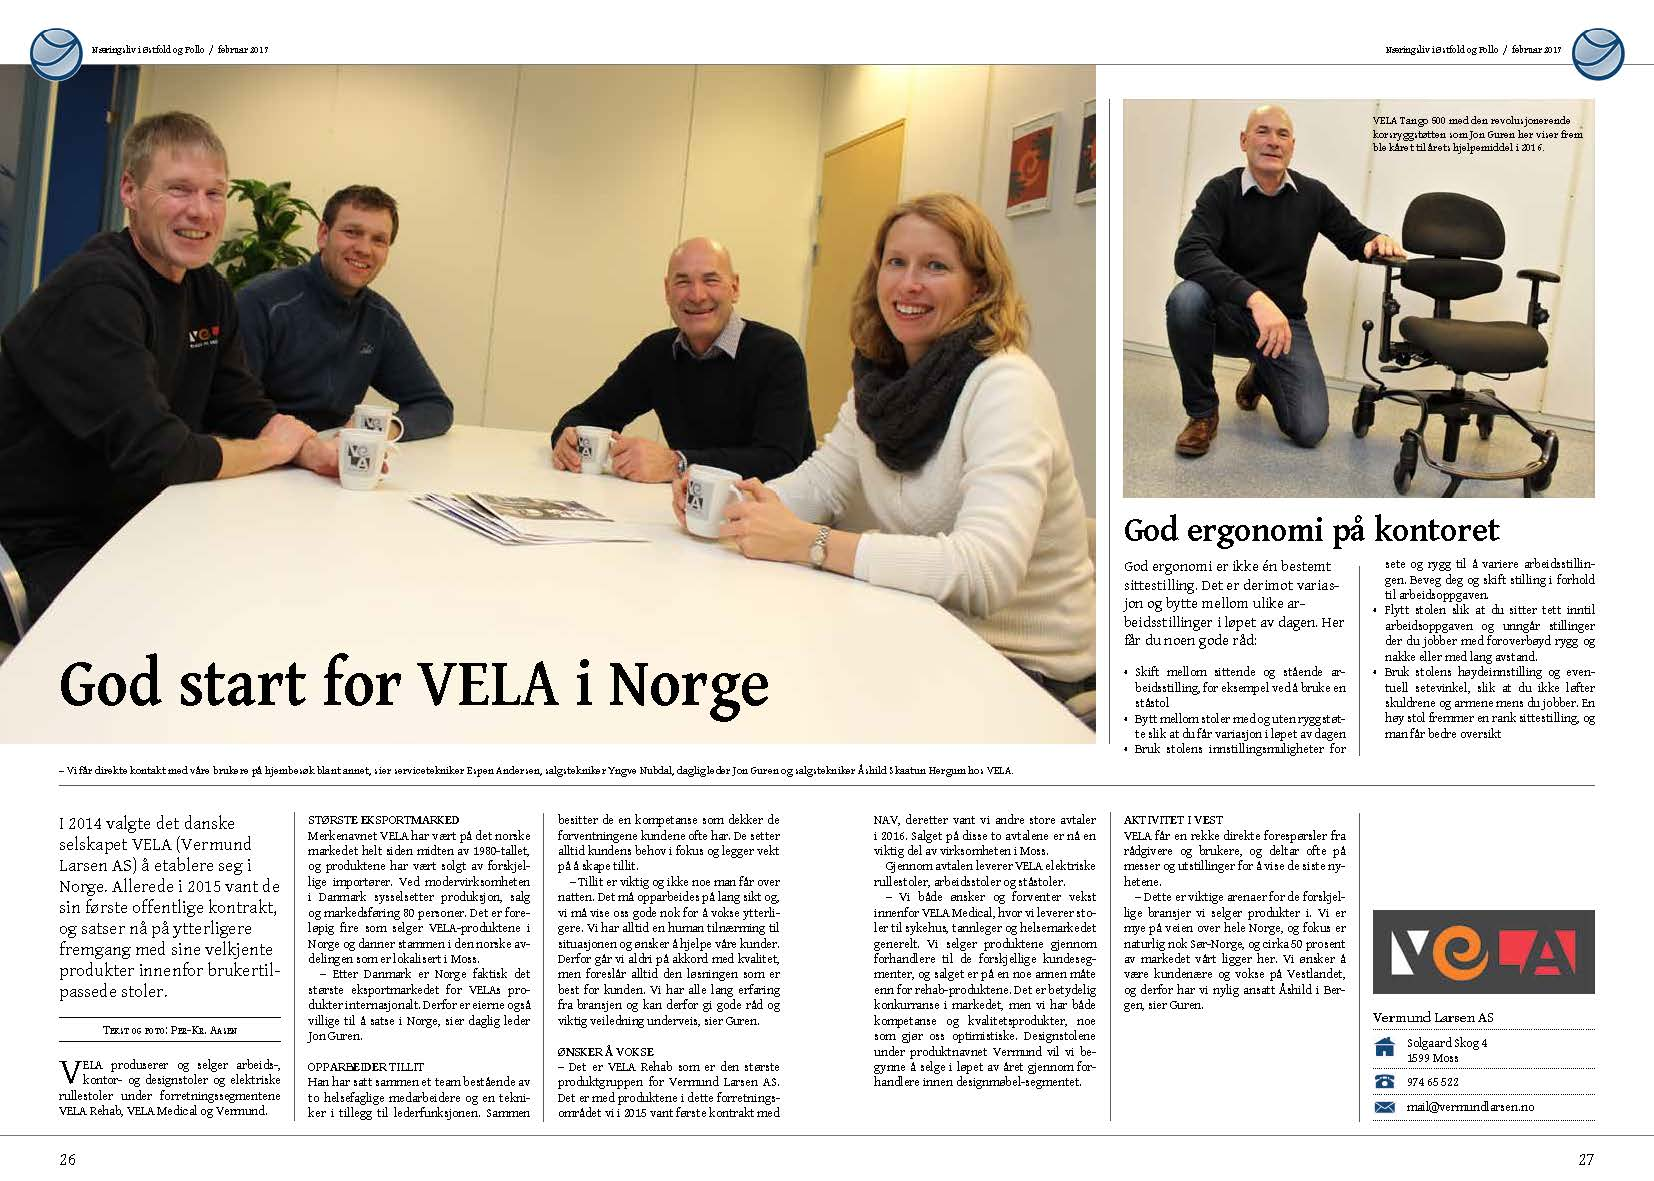 God start for VELA i Norge artikel